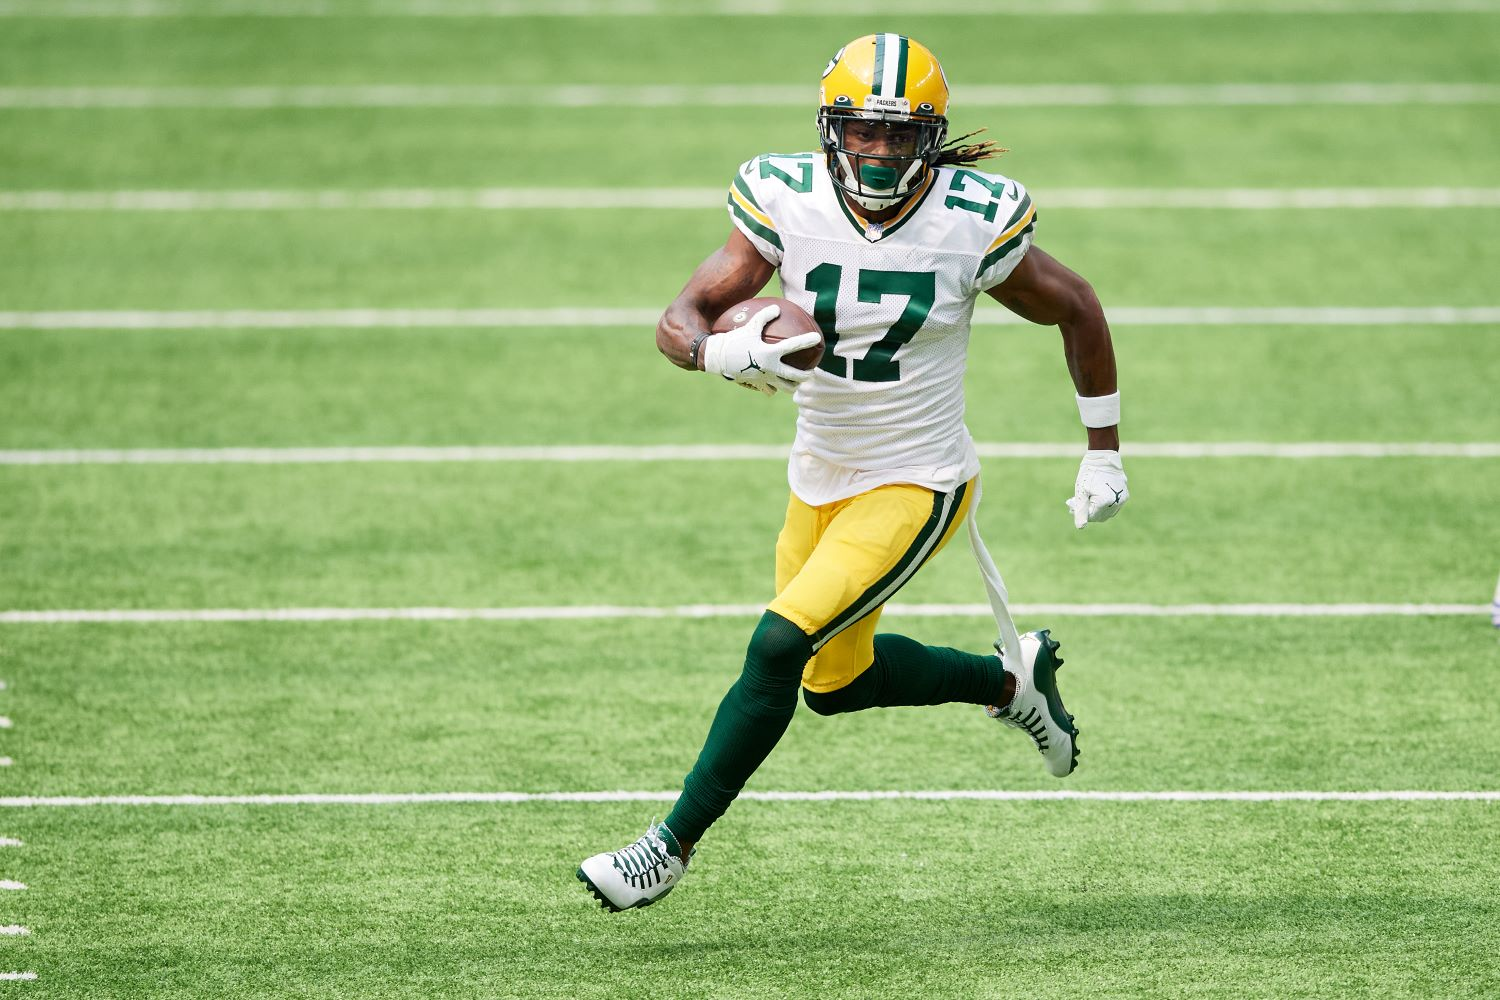 With Davante Adams proving he's the best receiver in the NFL, the Green Bay Packers need to decide whether they will pay him accordingly.